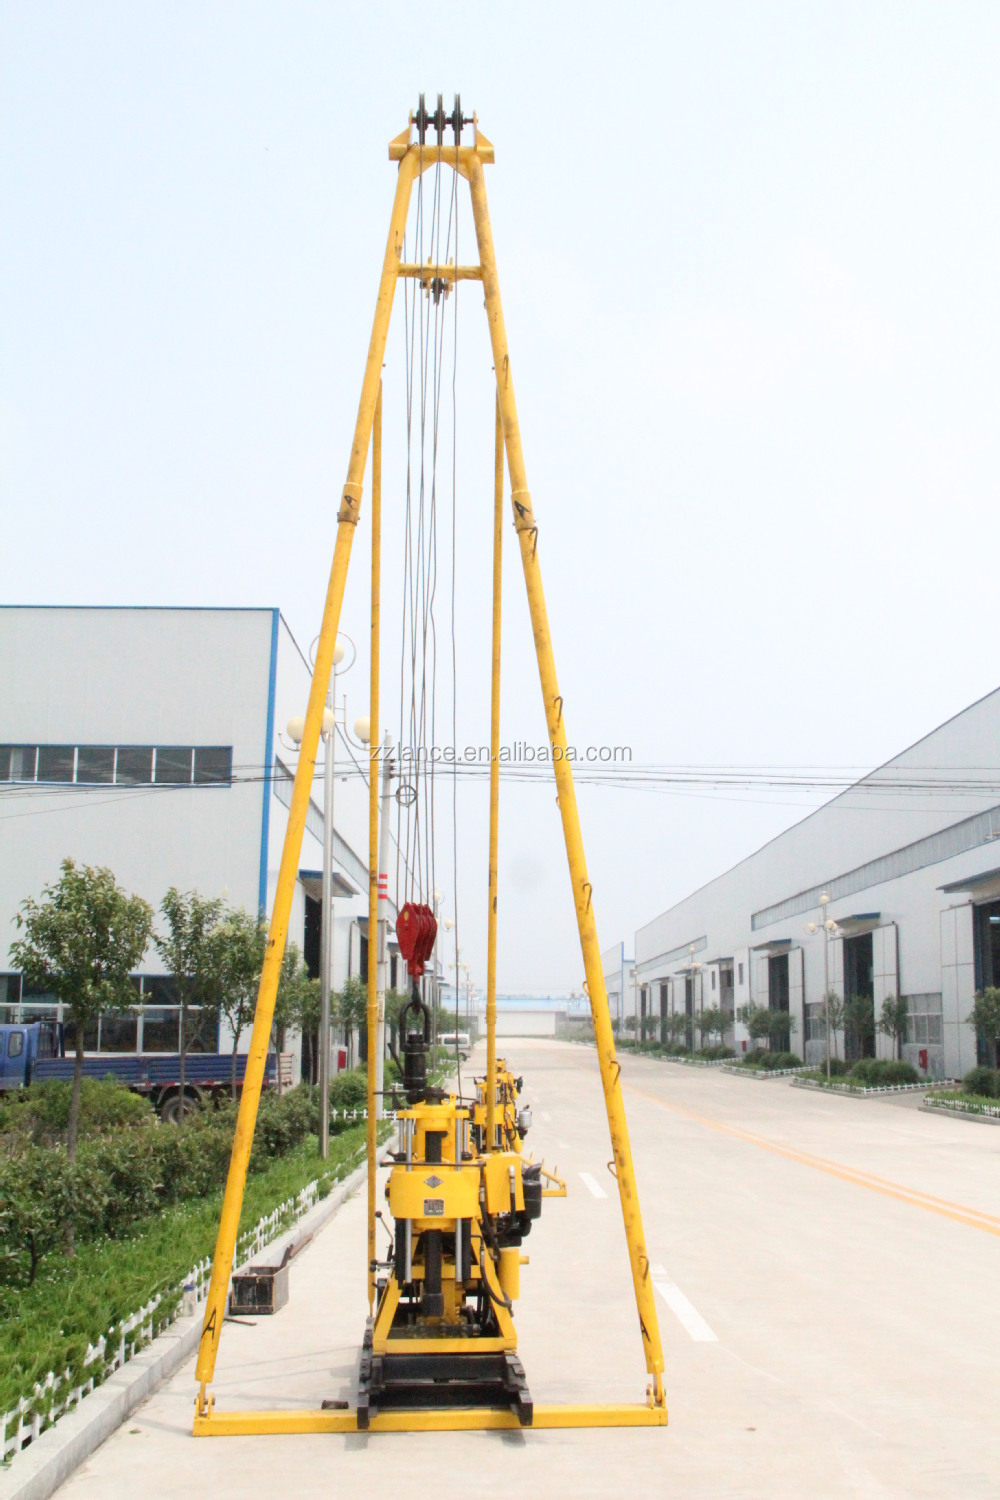 Portable borehole drilling machine price buy